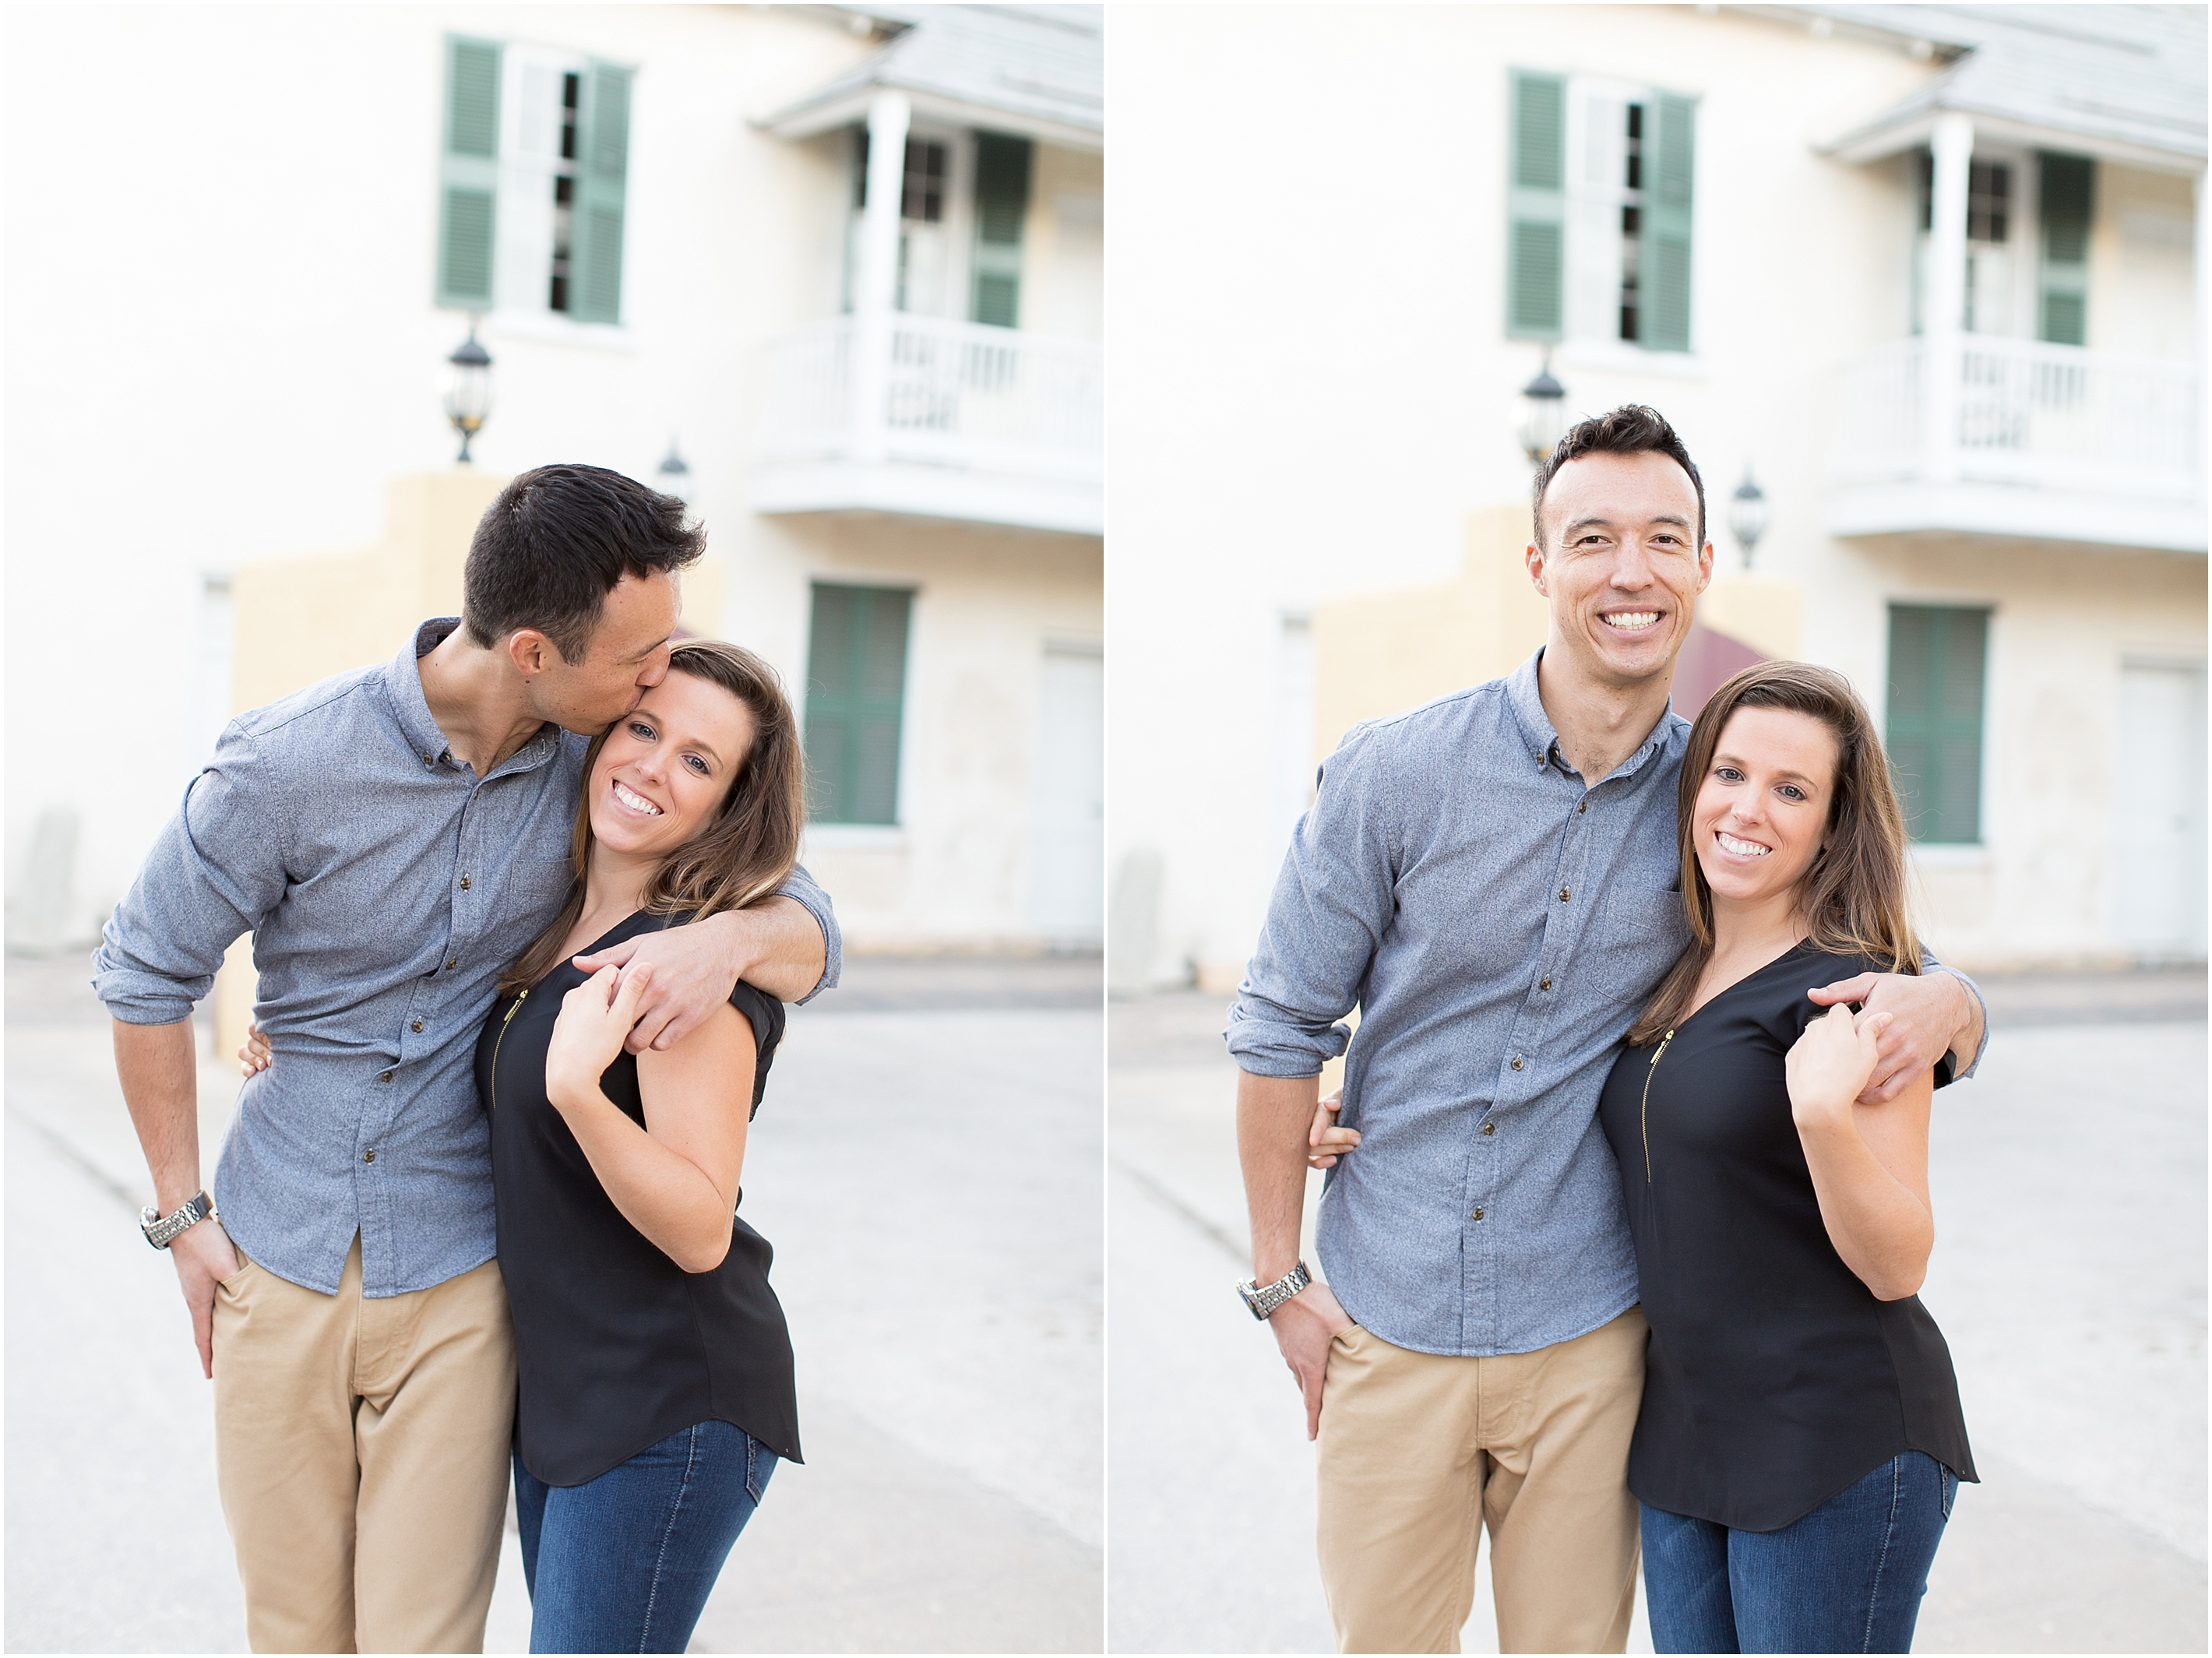 va_jessica_ryan_photography_st_augustine_florida_destination_engagement_photography_0147